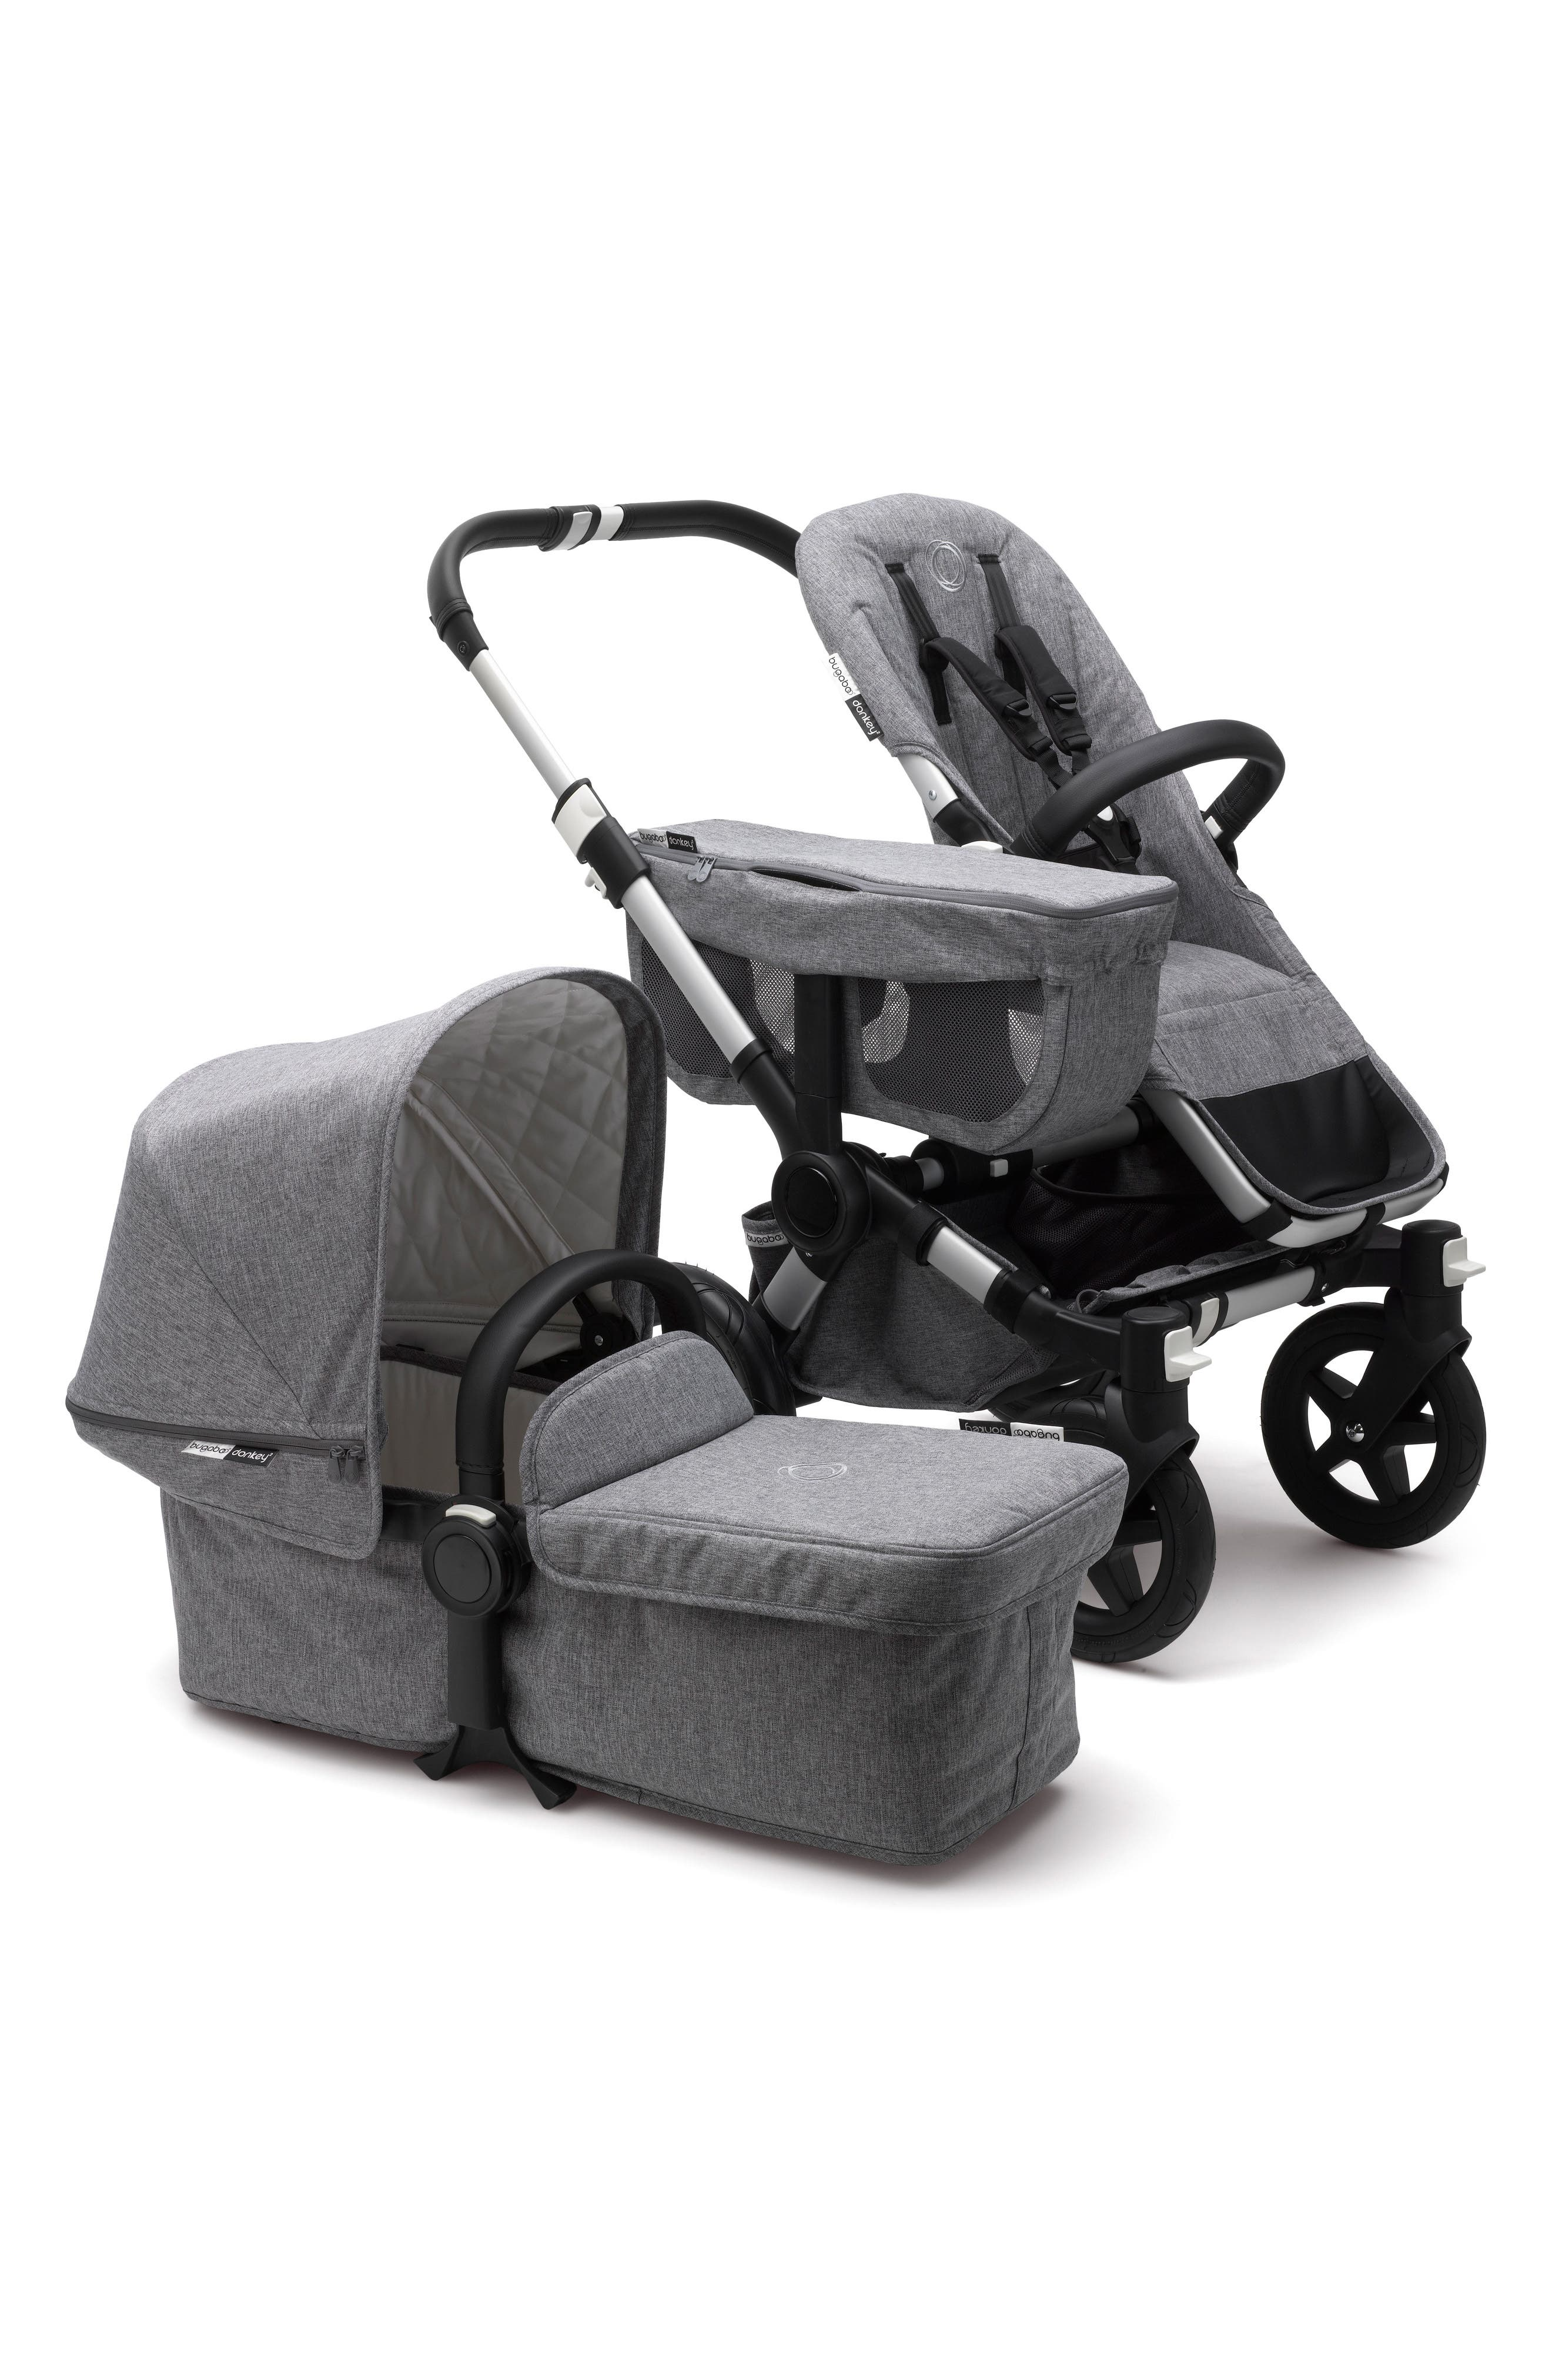 Donkey2 Classic Mono Complete Stroller with Bassinet,                         Main,                         color, GREY MELANGE/ ALUMINUM